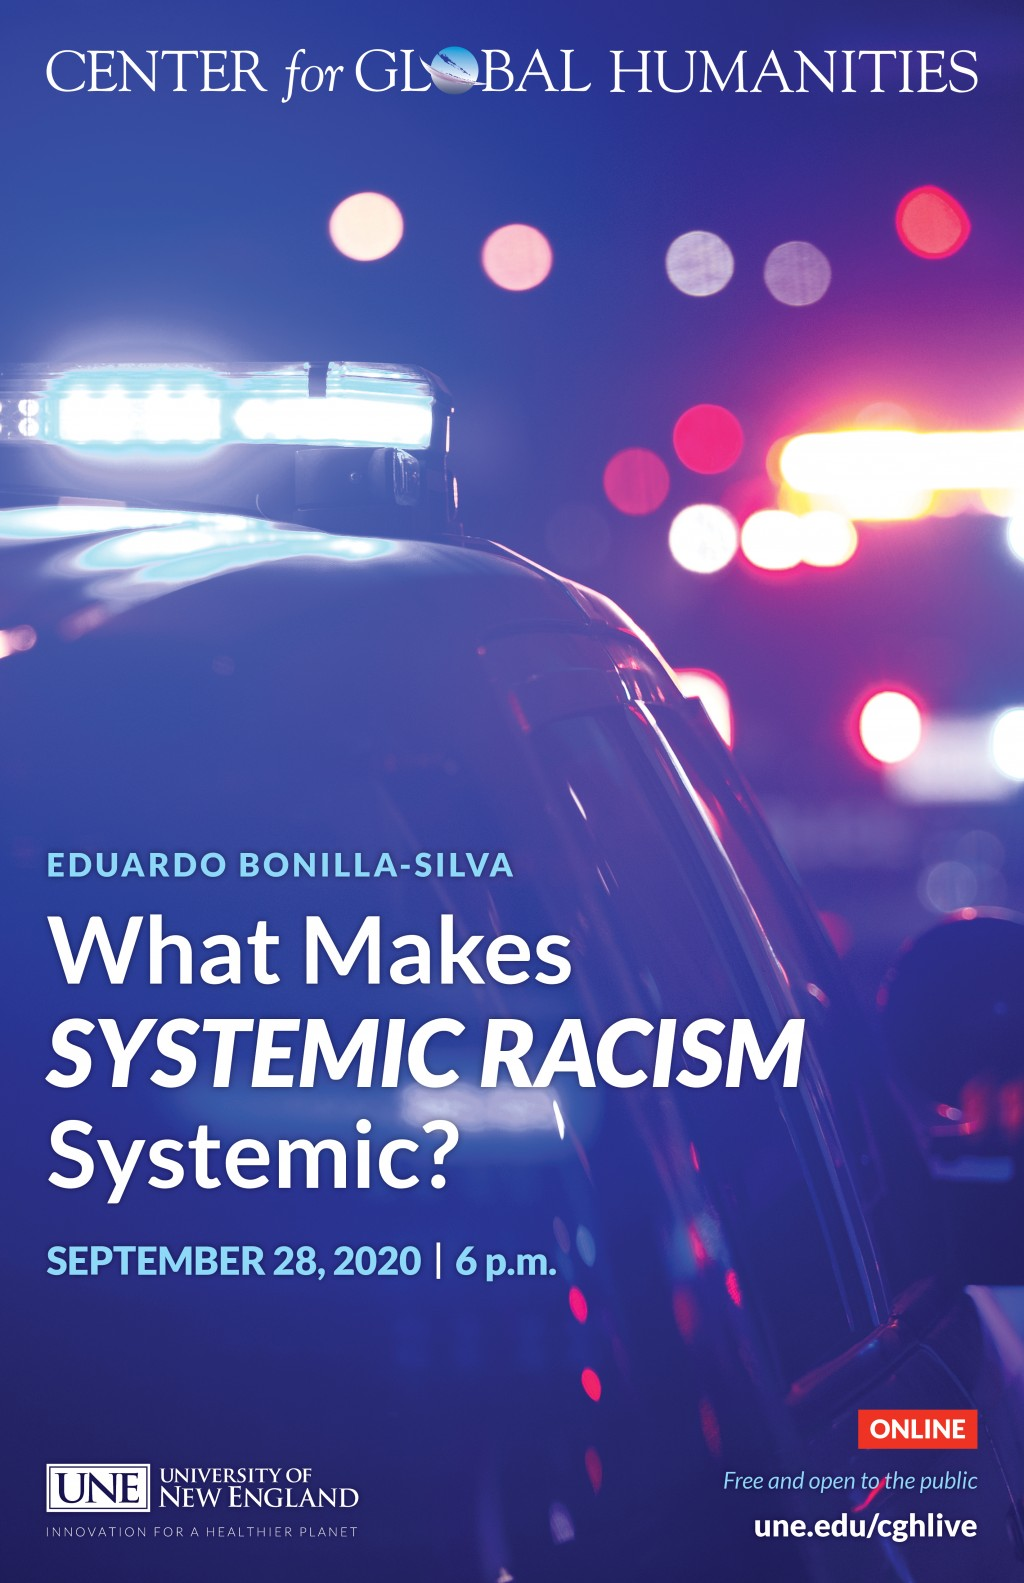 What Makes Systemic Racism Systemic?